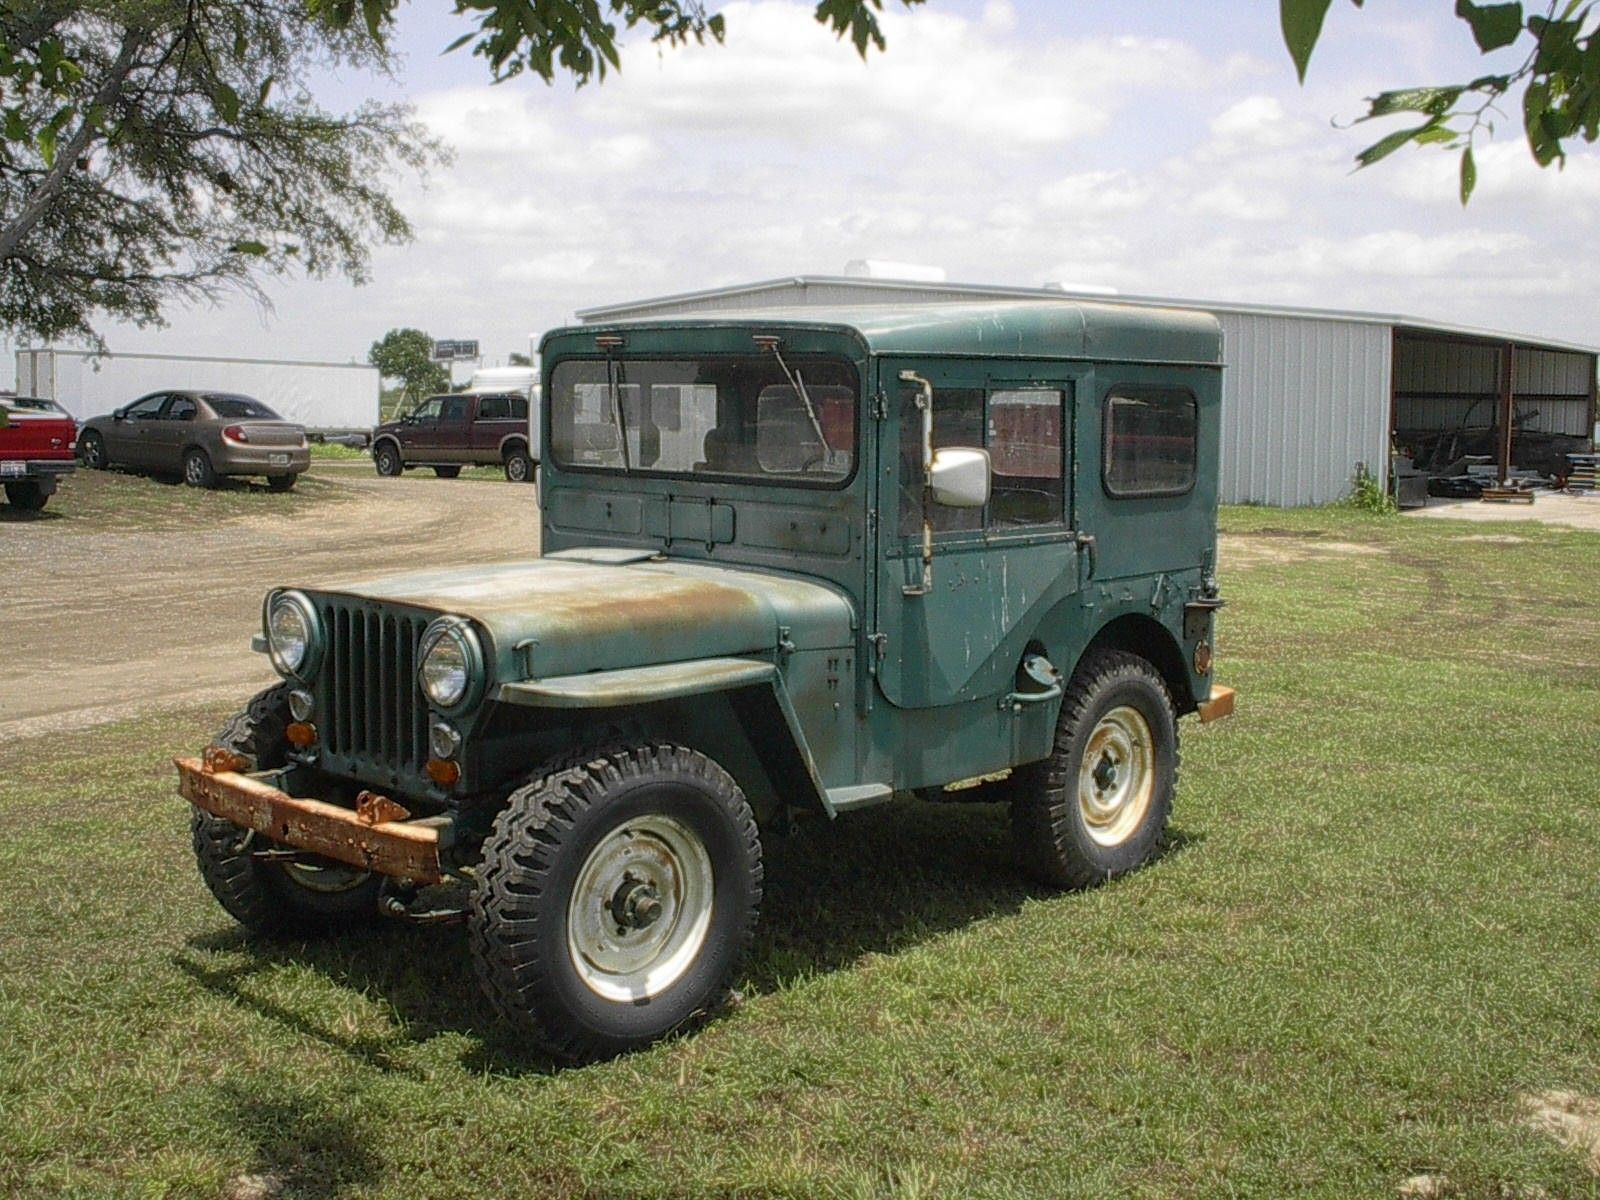 m38 willys jeep for sale in waxahachie texas korean war army jeep [ 1600 x 1200 Pixel ]